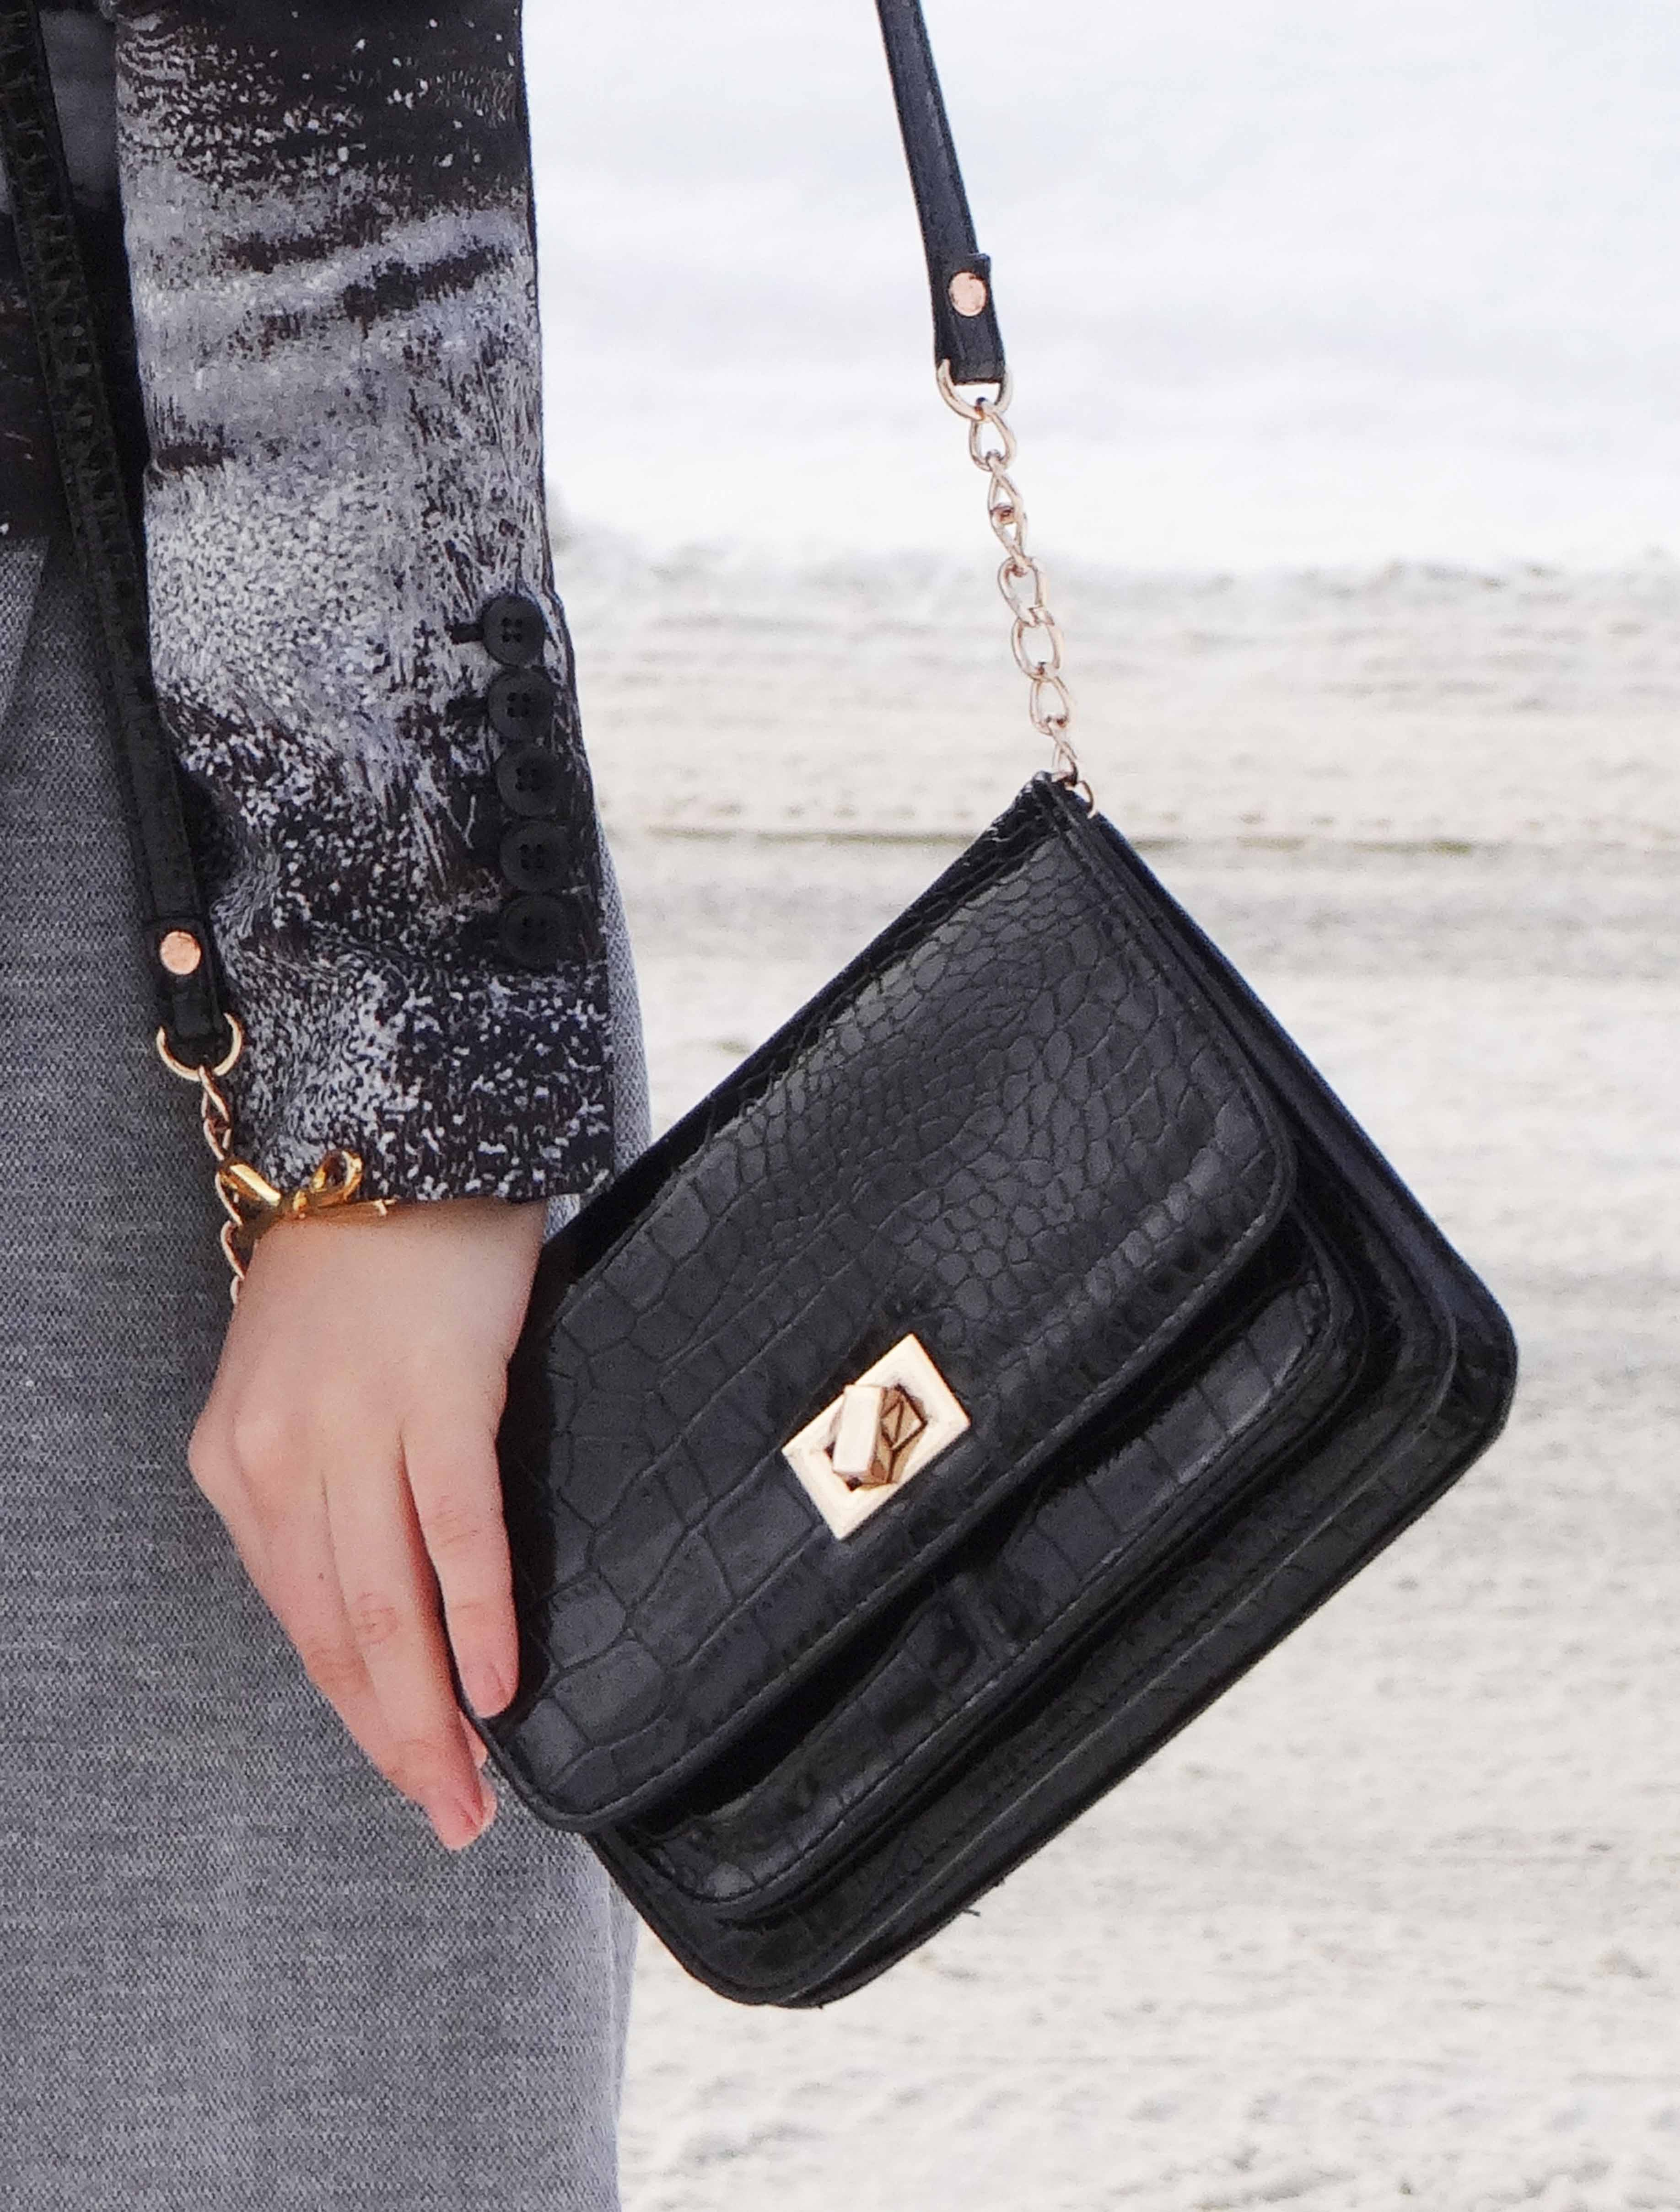 Black crossbody handbag, black purse with chain, life and style, fashion blog, fashion, style, outfit, fashion blogger, style blogger, outfit ideas, fall style, shopping, accessorize, street style, fashion styles, Victoria Simpson, A Side of Vogue